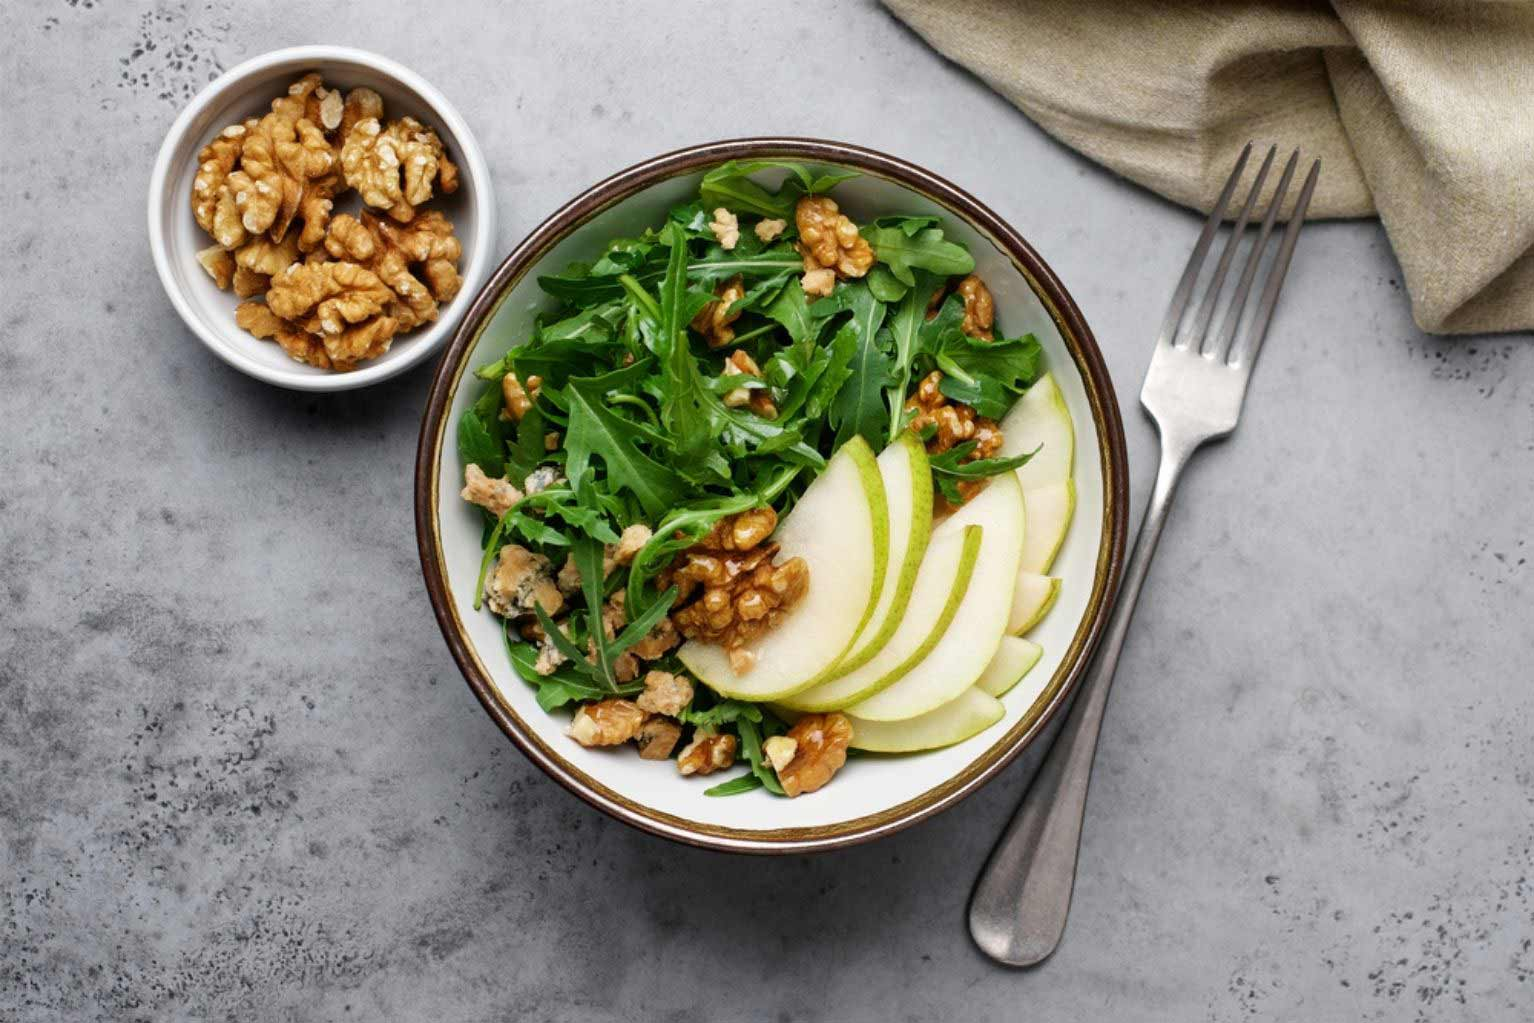 Salad with arugula, walnuts, cheese, and pears in a glass bowl next to a small bowl of walnuts and a fork.